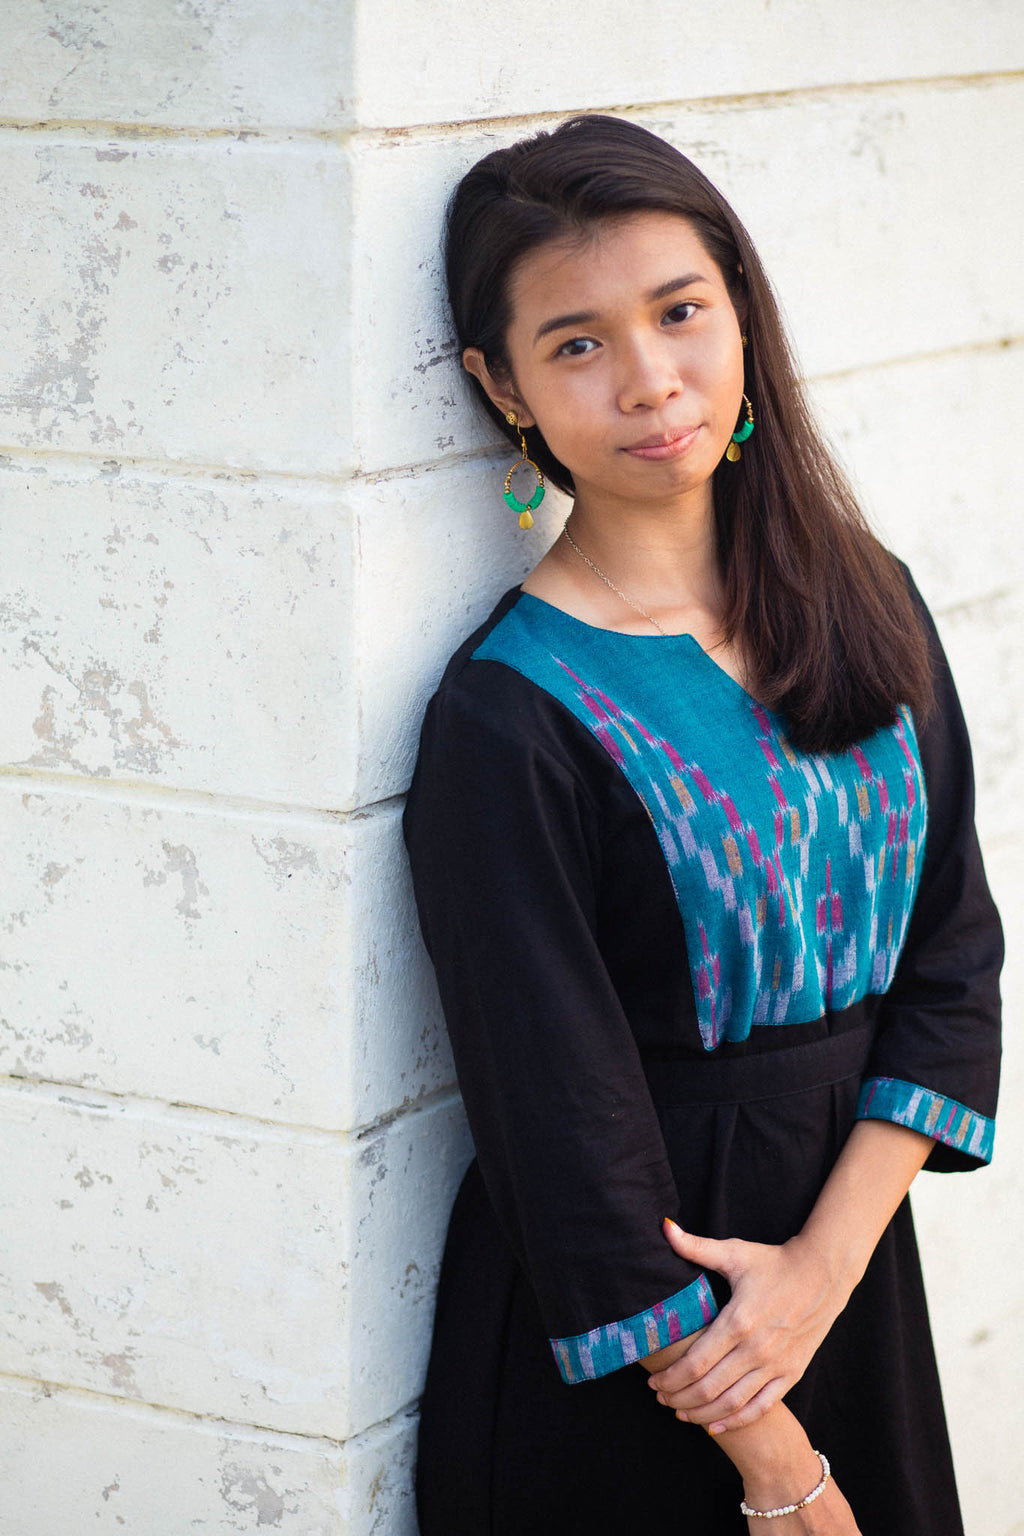 Black Jewel Dress. A Batik Dress in Emerald and Black. Made by artisans.